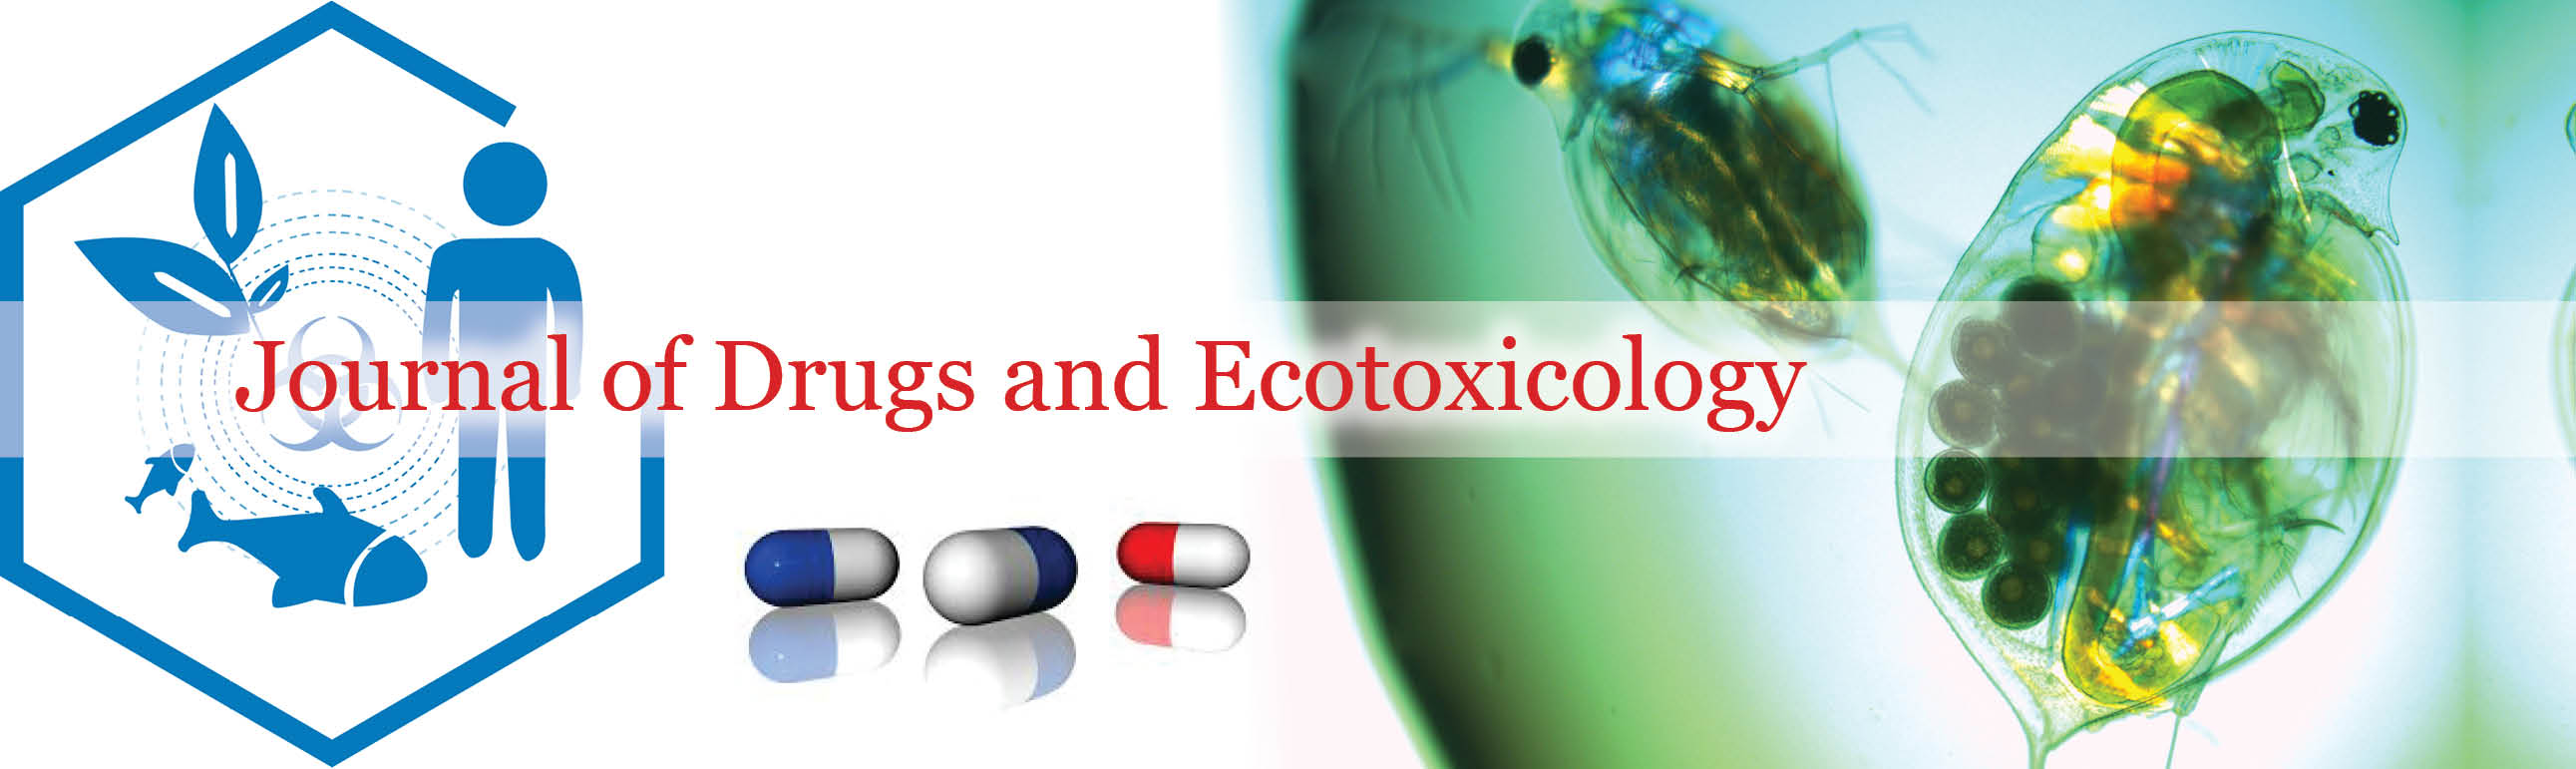 Journal of Drugs & Ecotoxicology